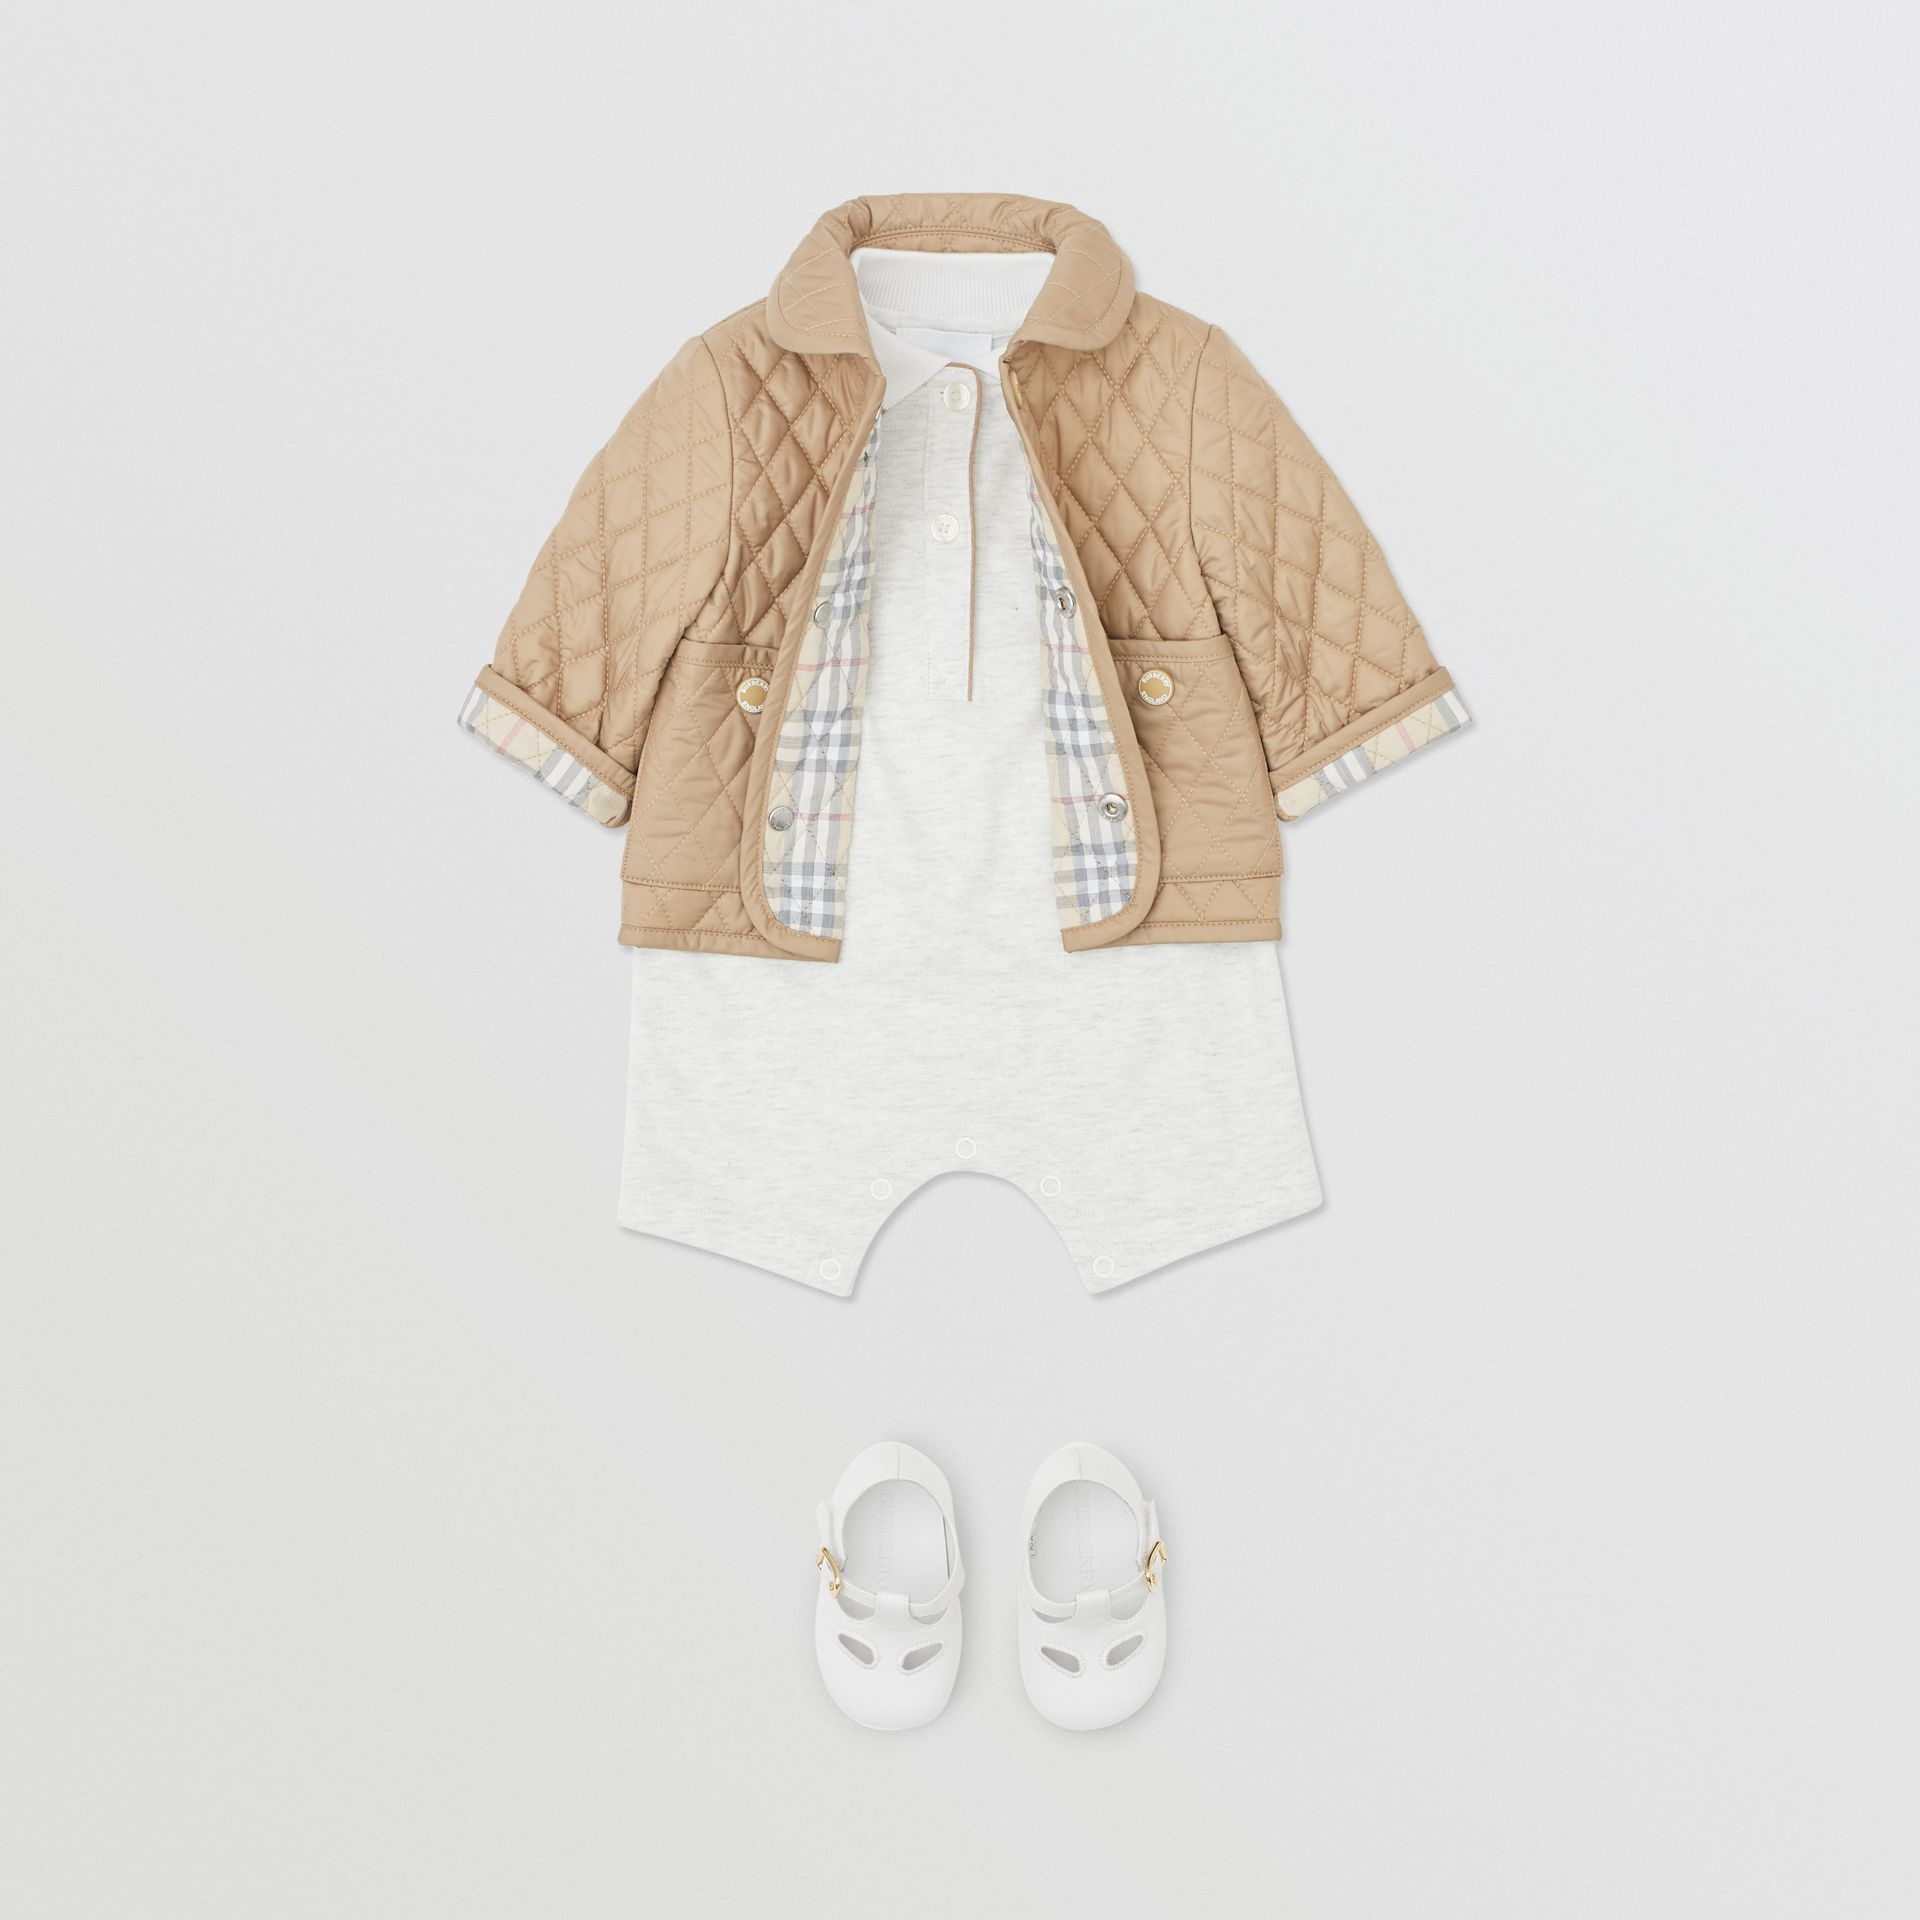 Showerproof Diamond Quilted Jacket in Walnut - Children | Burberry Hong Kong S.A.R - gallery image 3